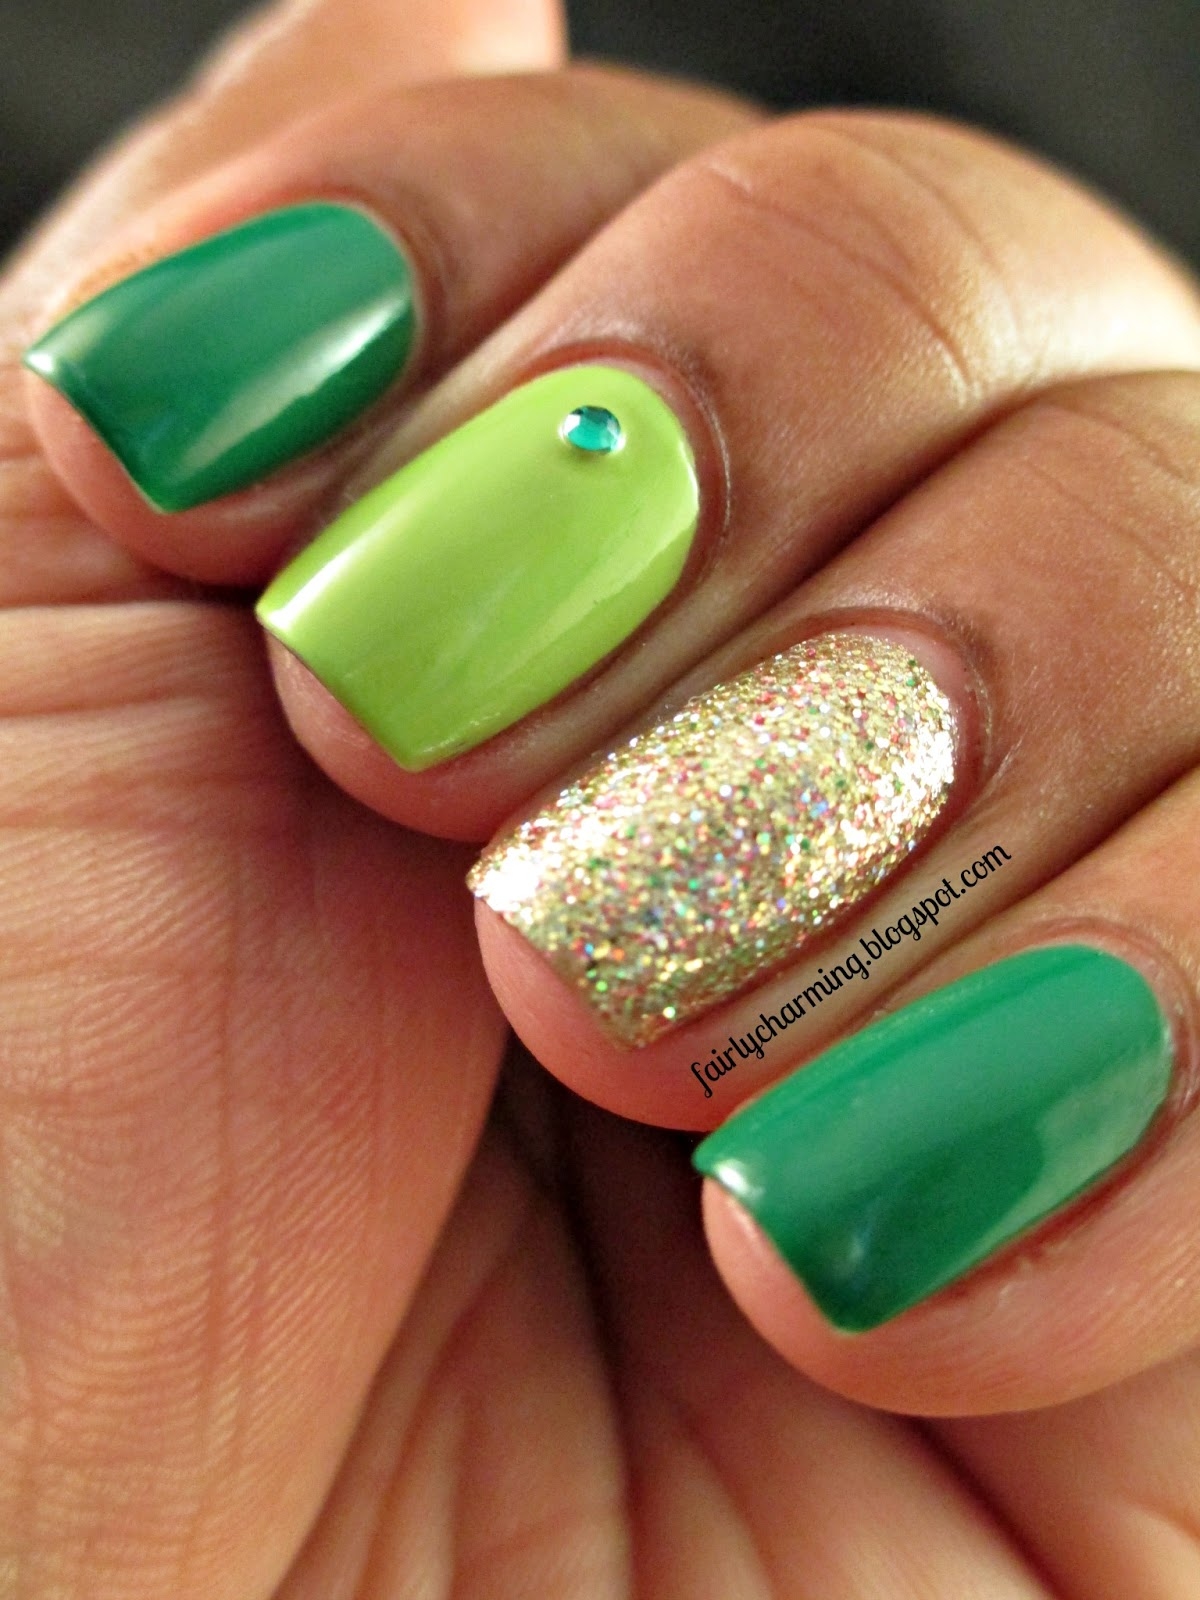 Fairly charming luck schmuck revlon posh color club gingerbread sally hansen green with envy nail crystals prinsesfo Images